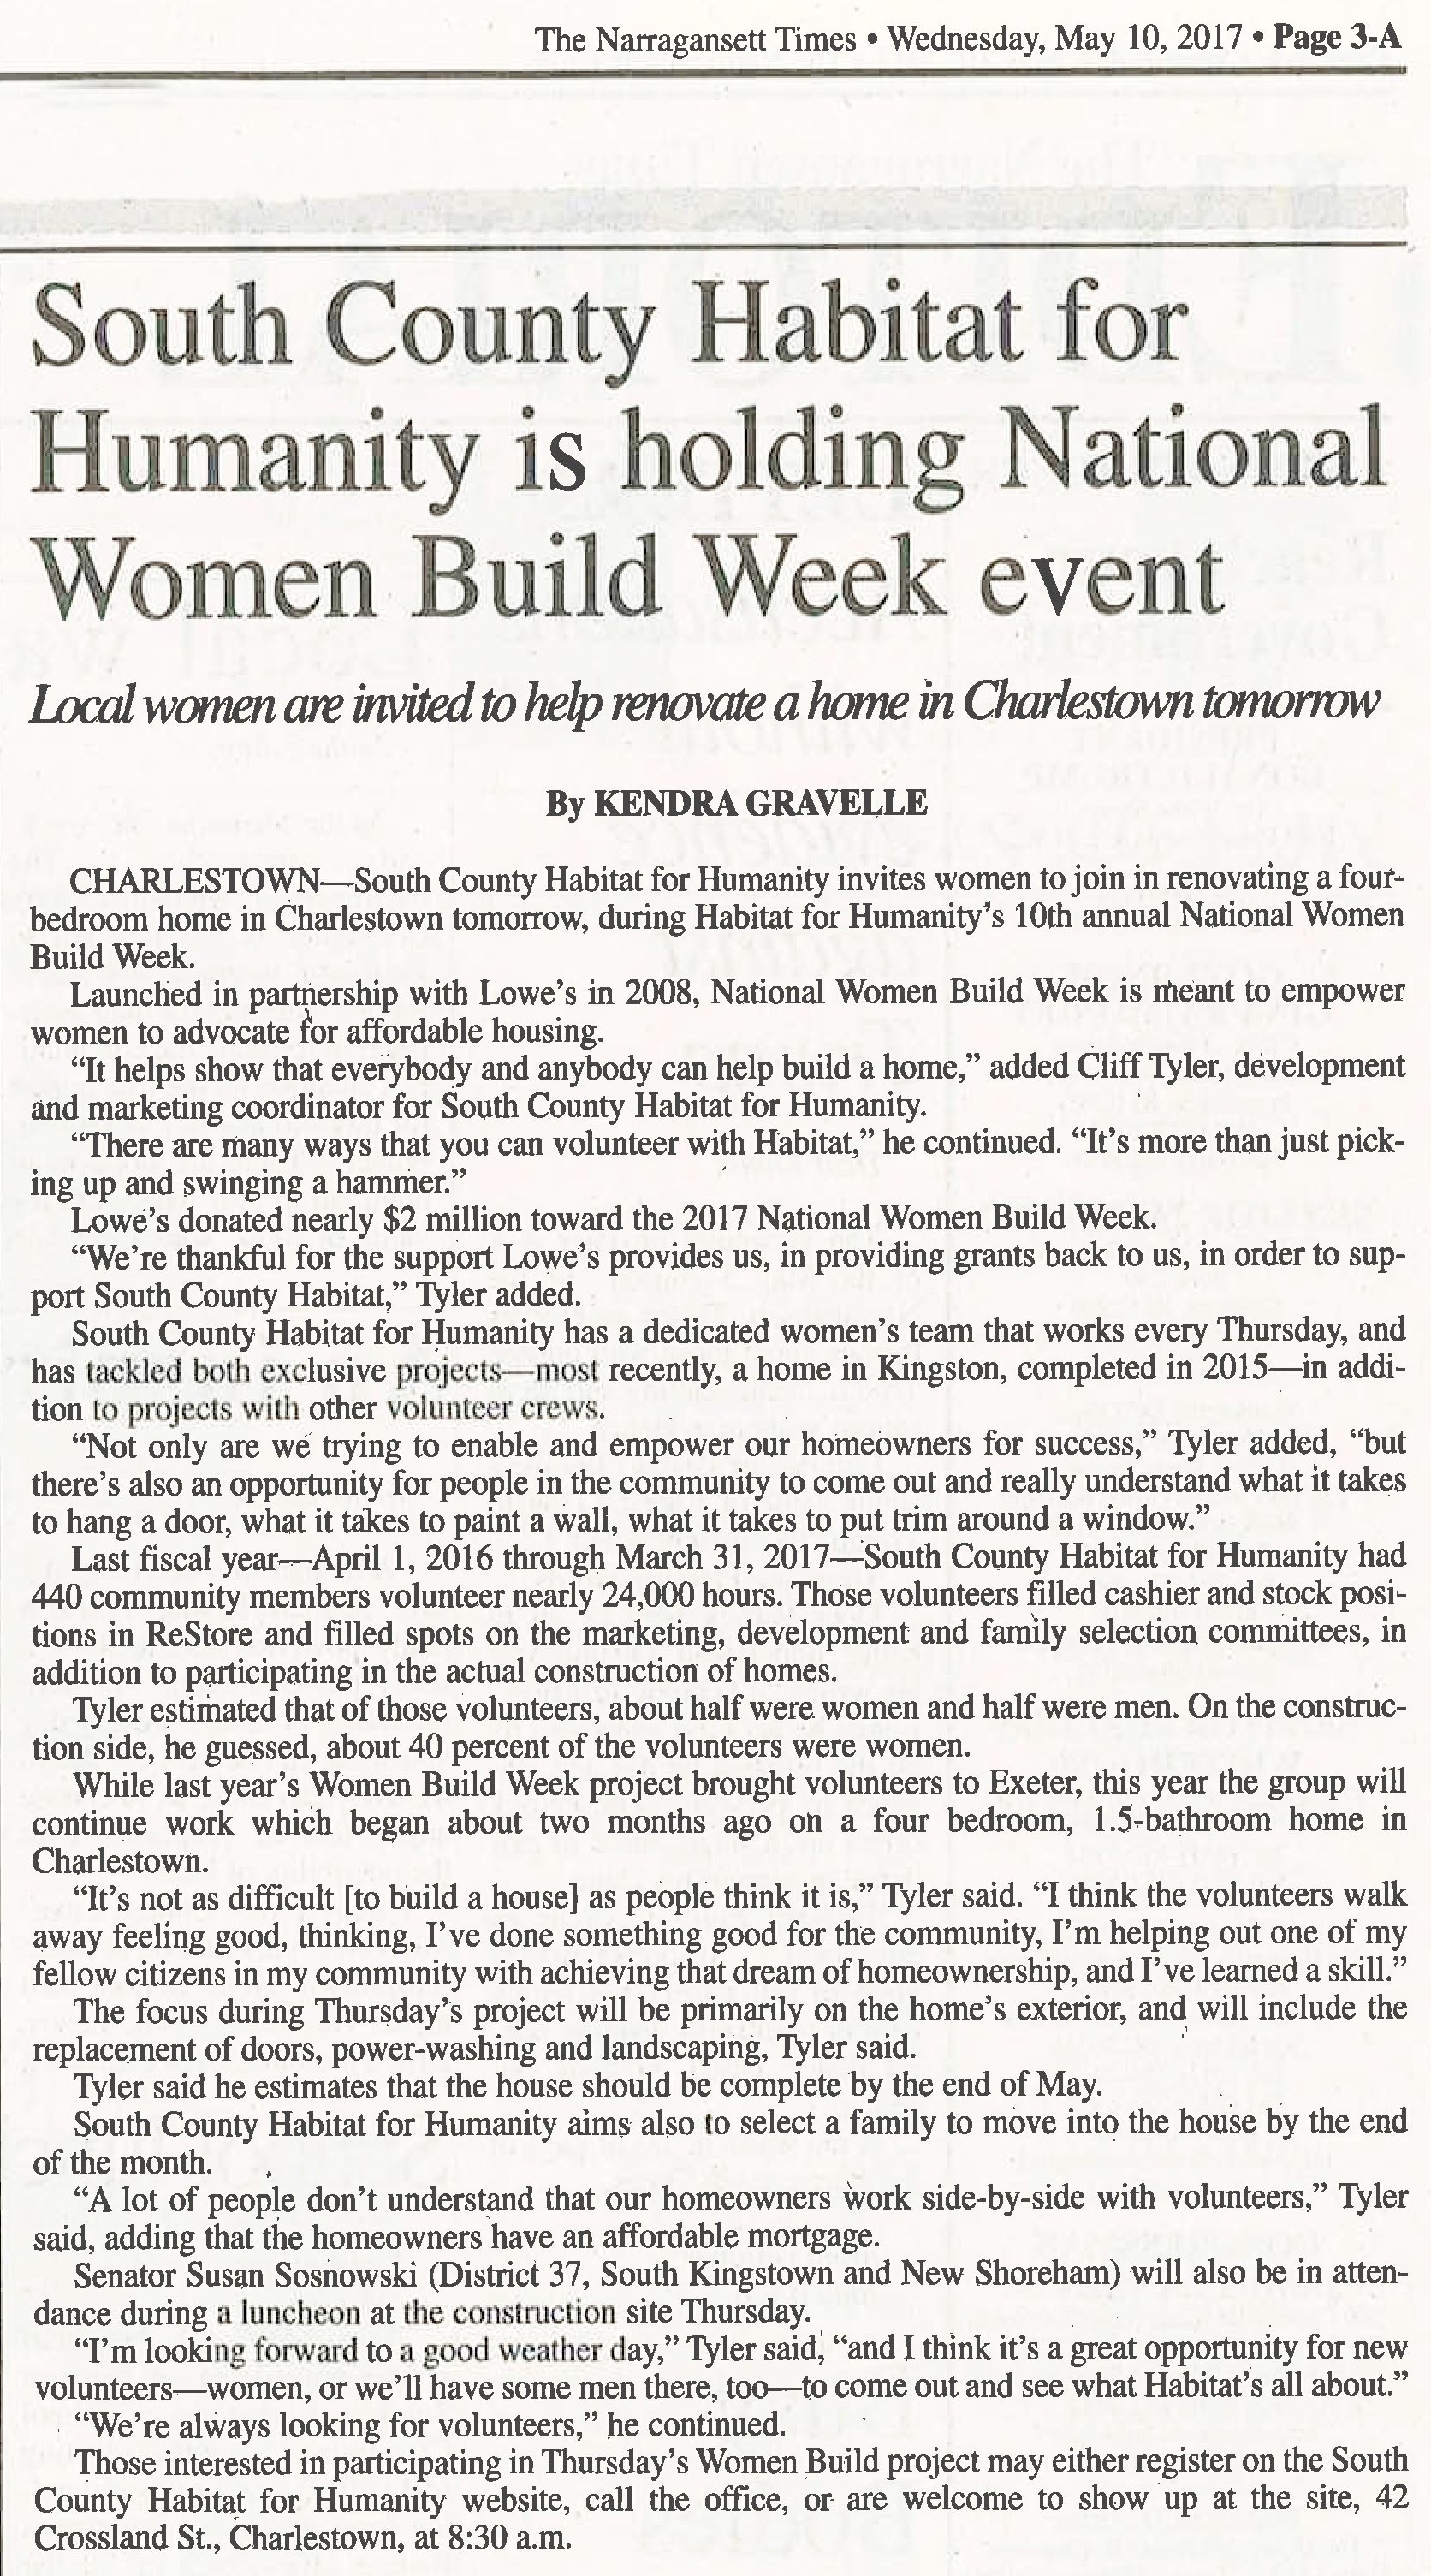 National Women Build Week - Narragansett Times